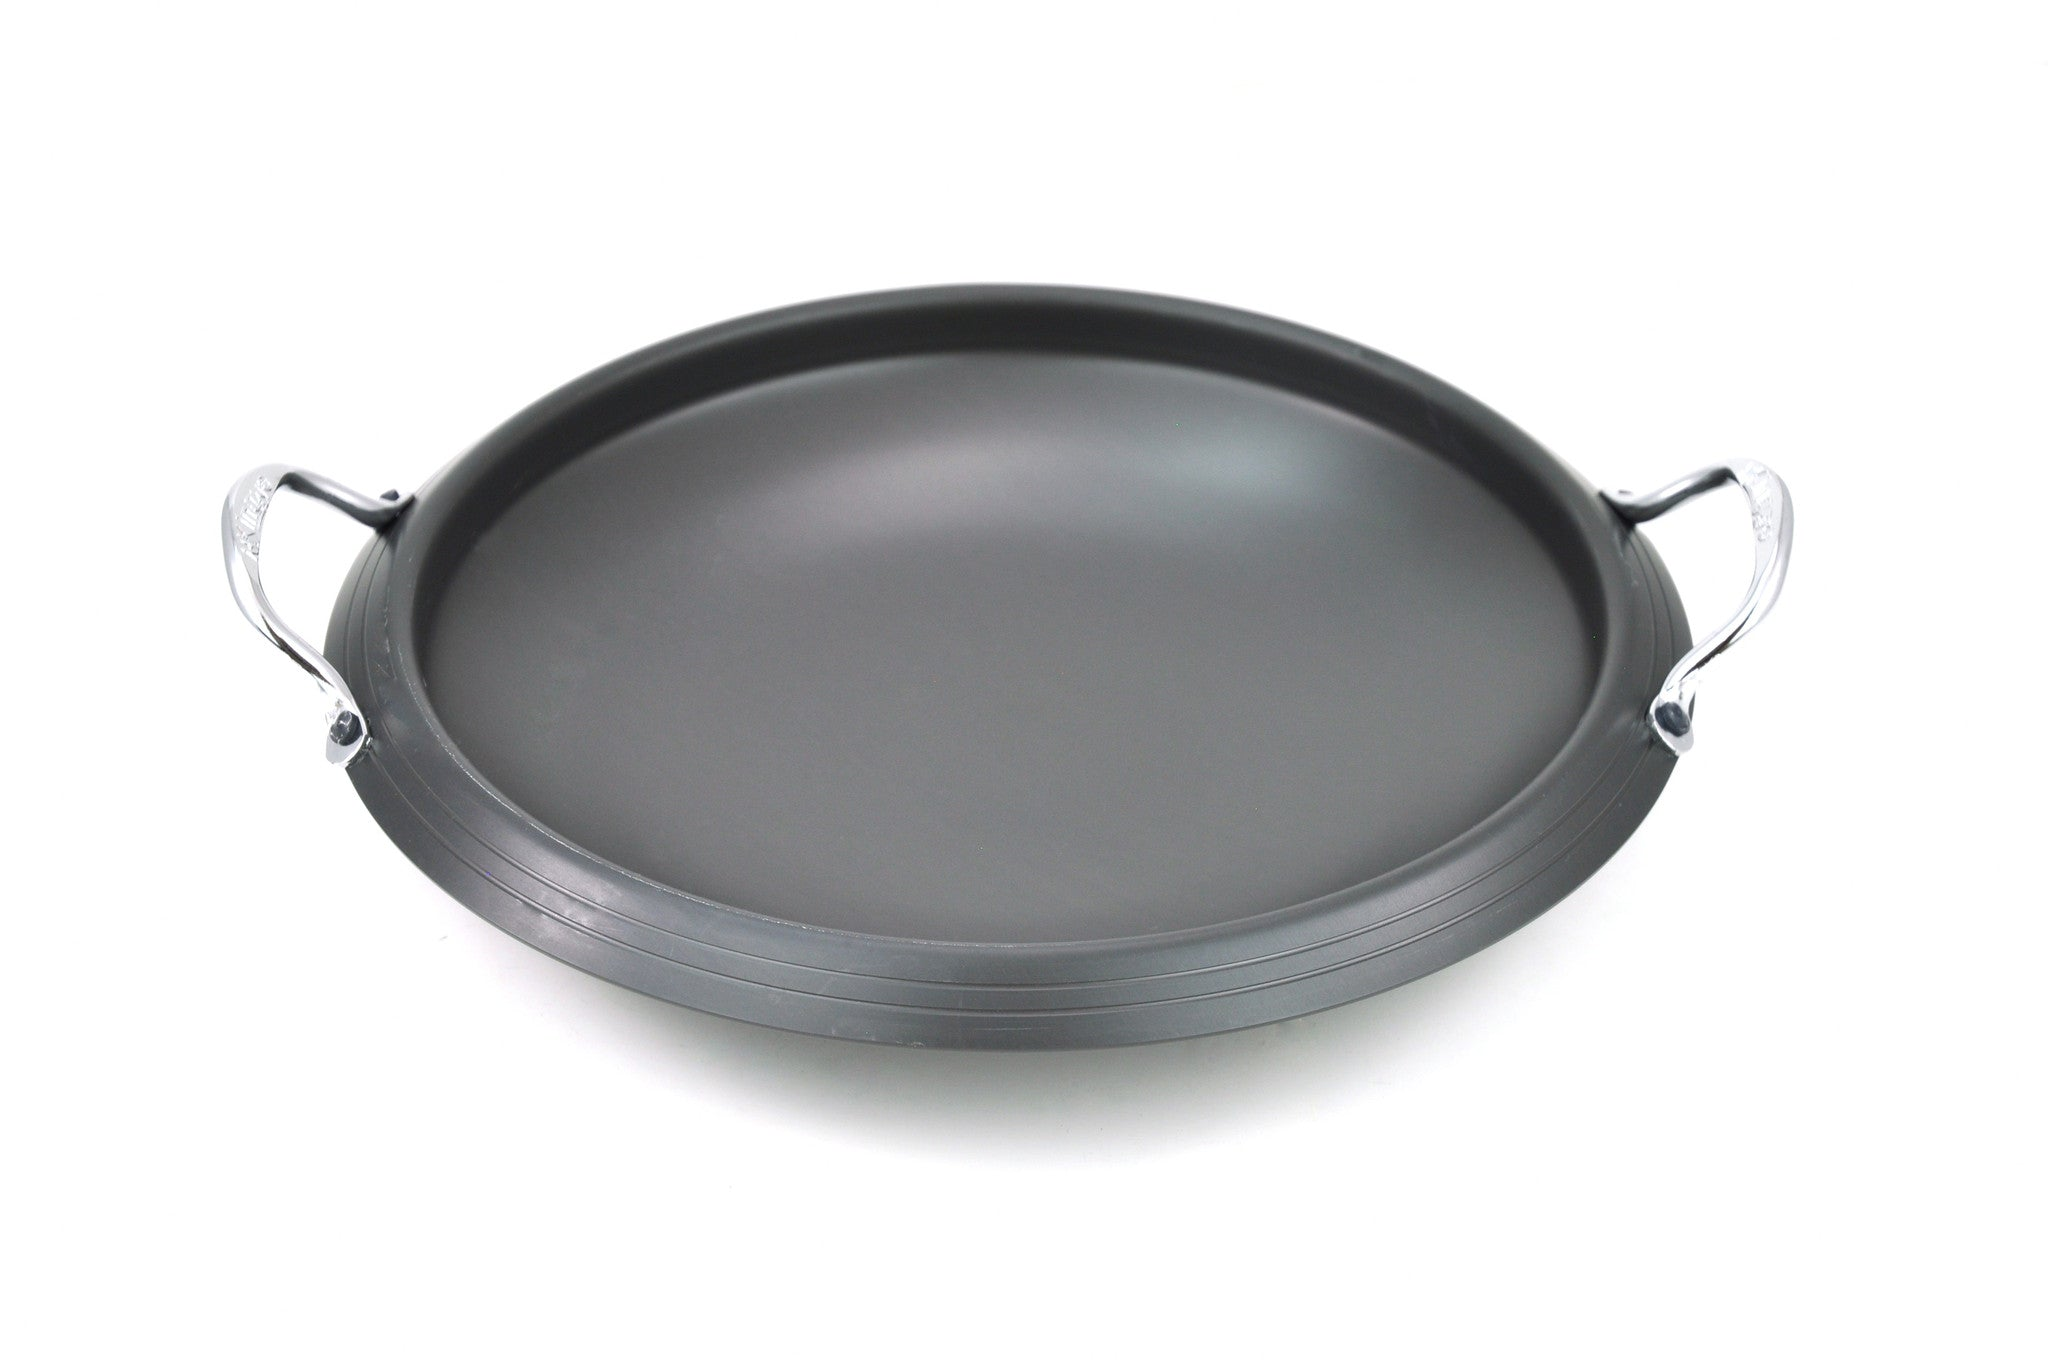 Anodized Aluminum Wok 경질 신형 정골 냄비 (Case-10pcs), Aluminum - eKitchenary